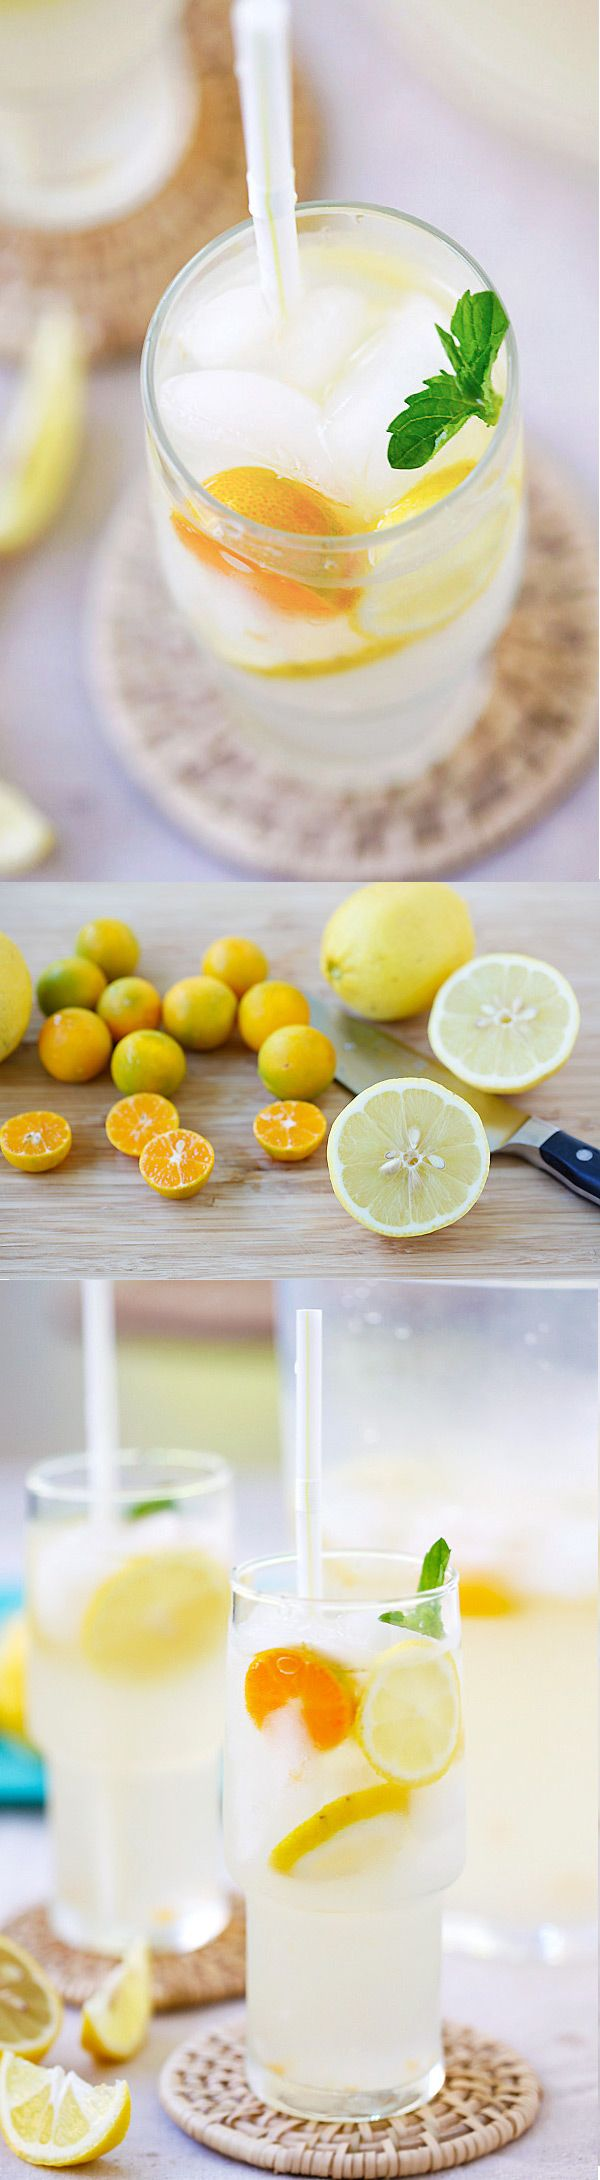 made with coconut water and fresh lemon juice.